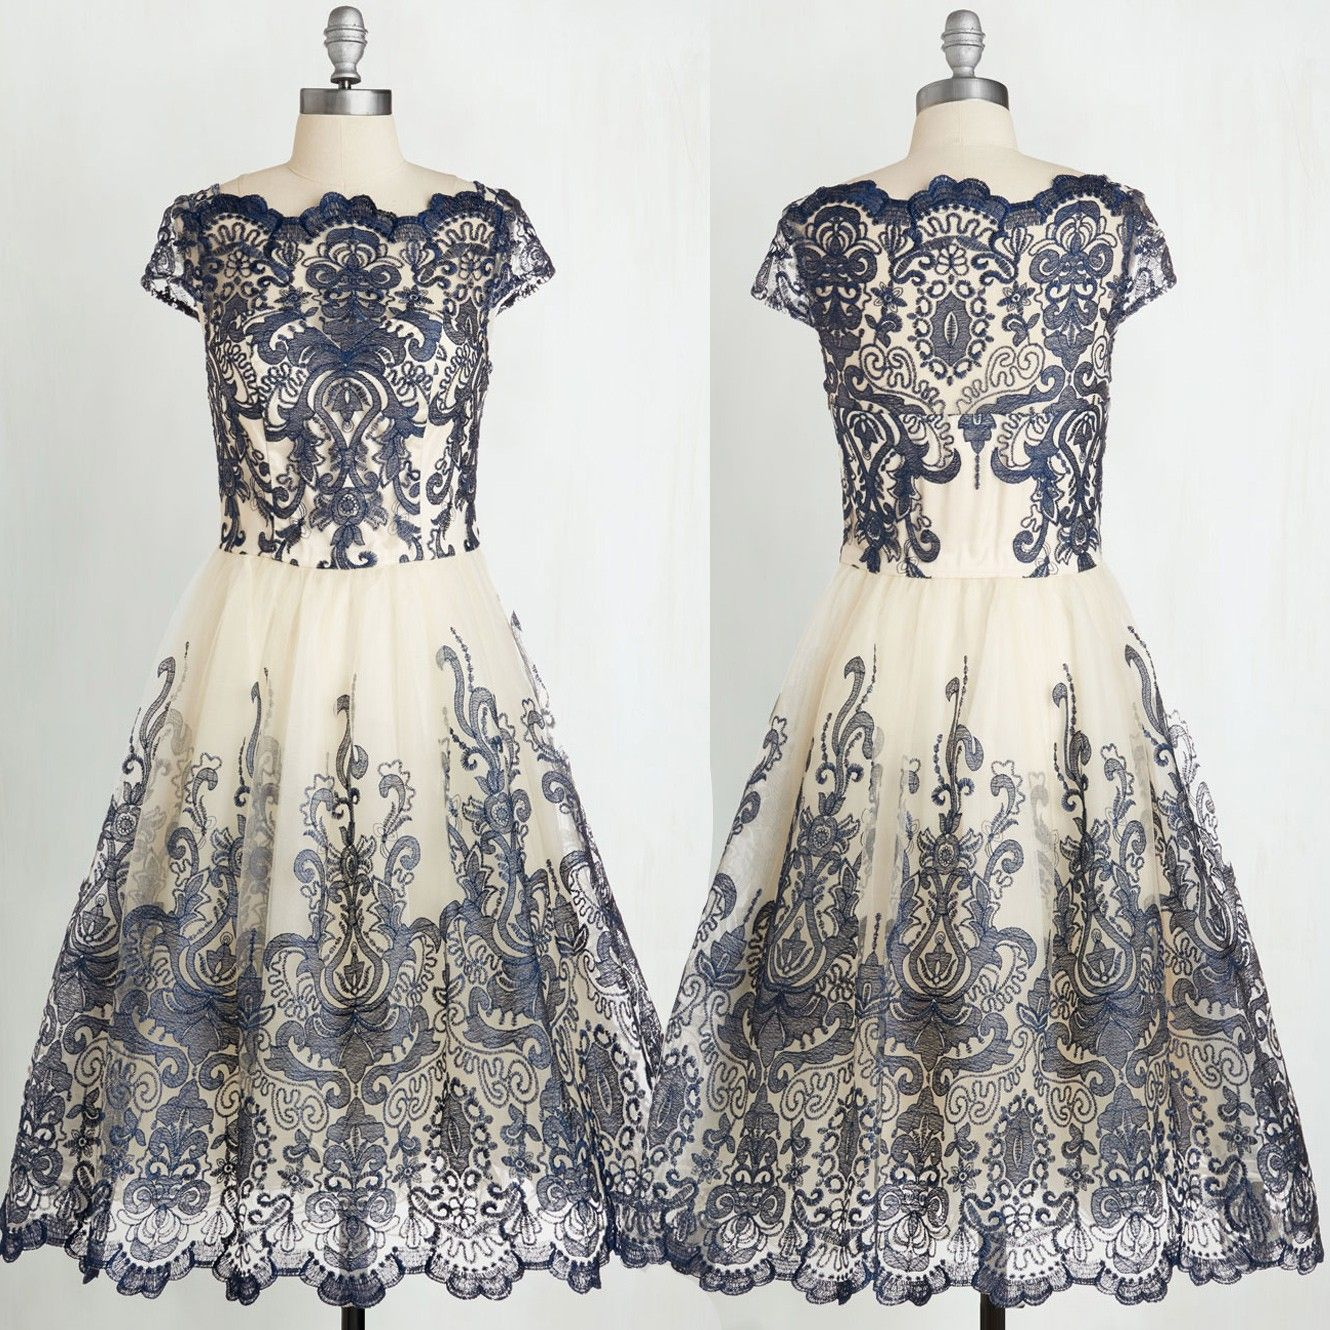 New arrival vintage ball gown prom dress with lace homecoming